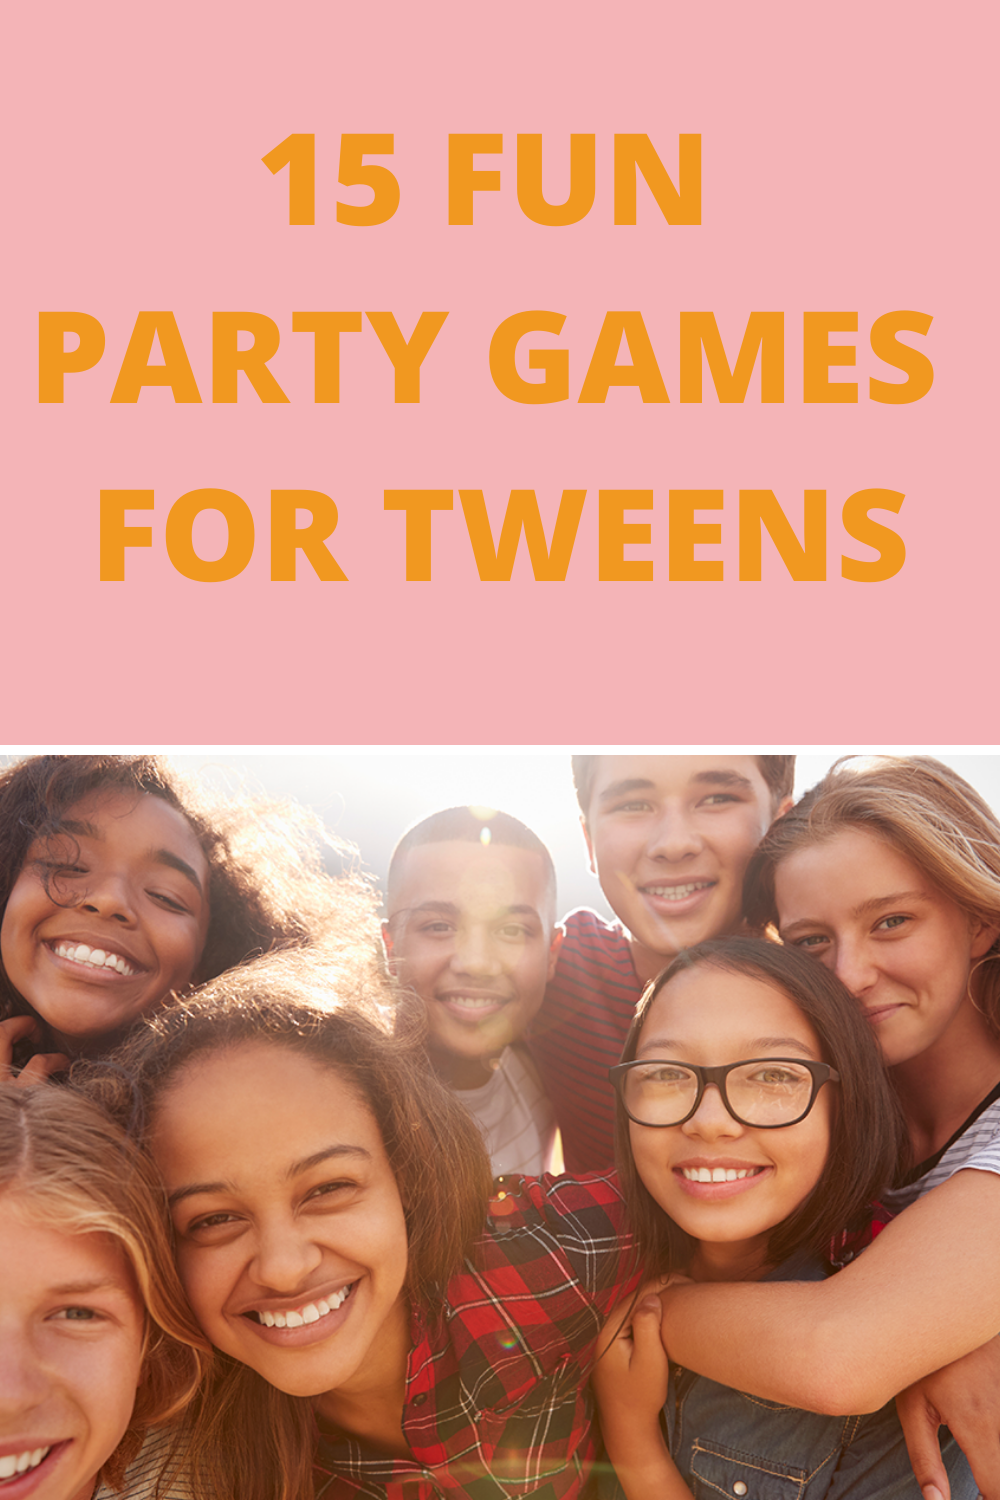 Party Games for Tweens